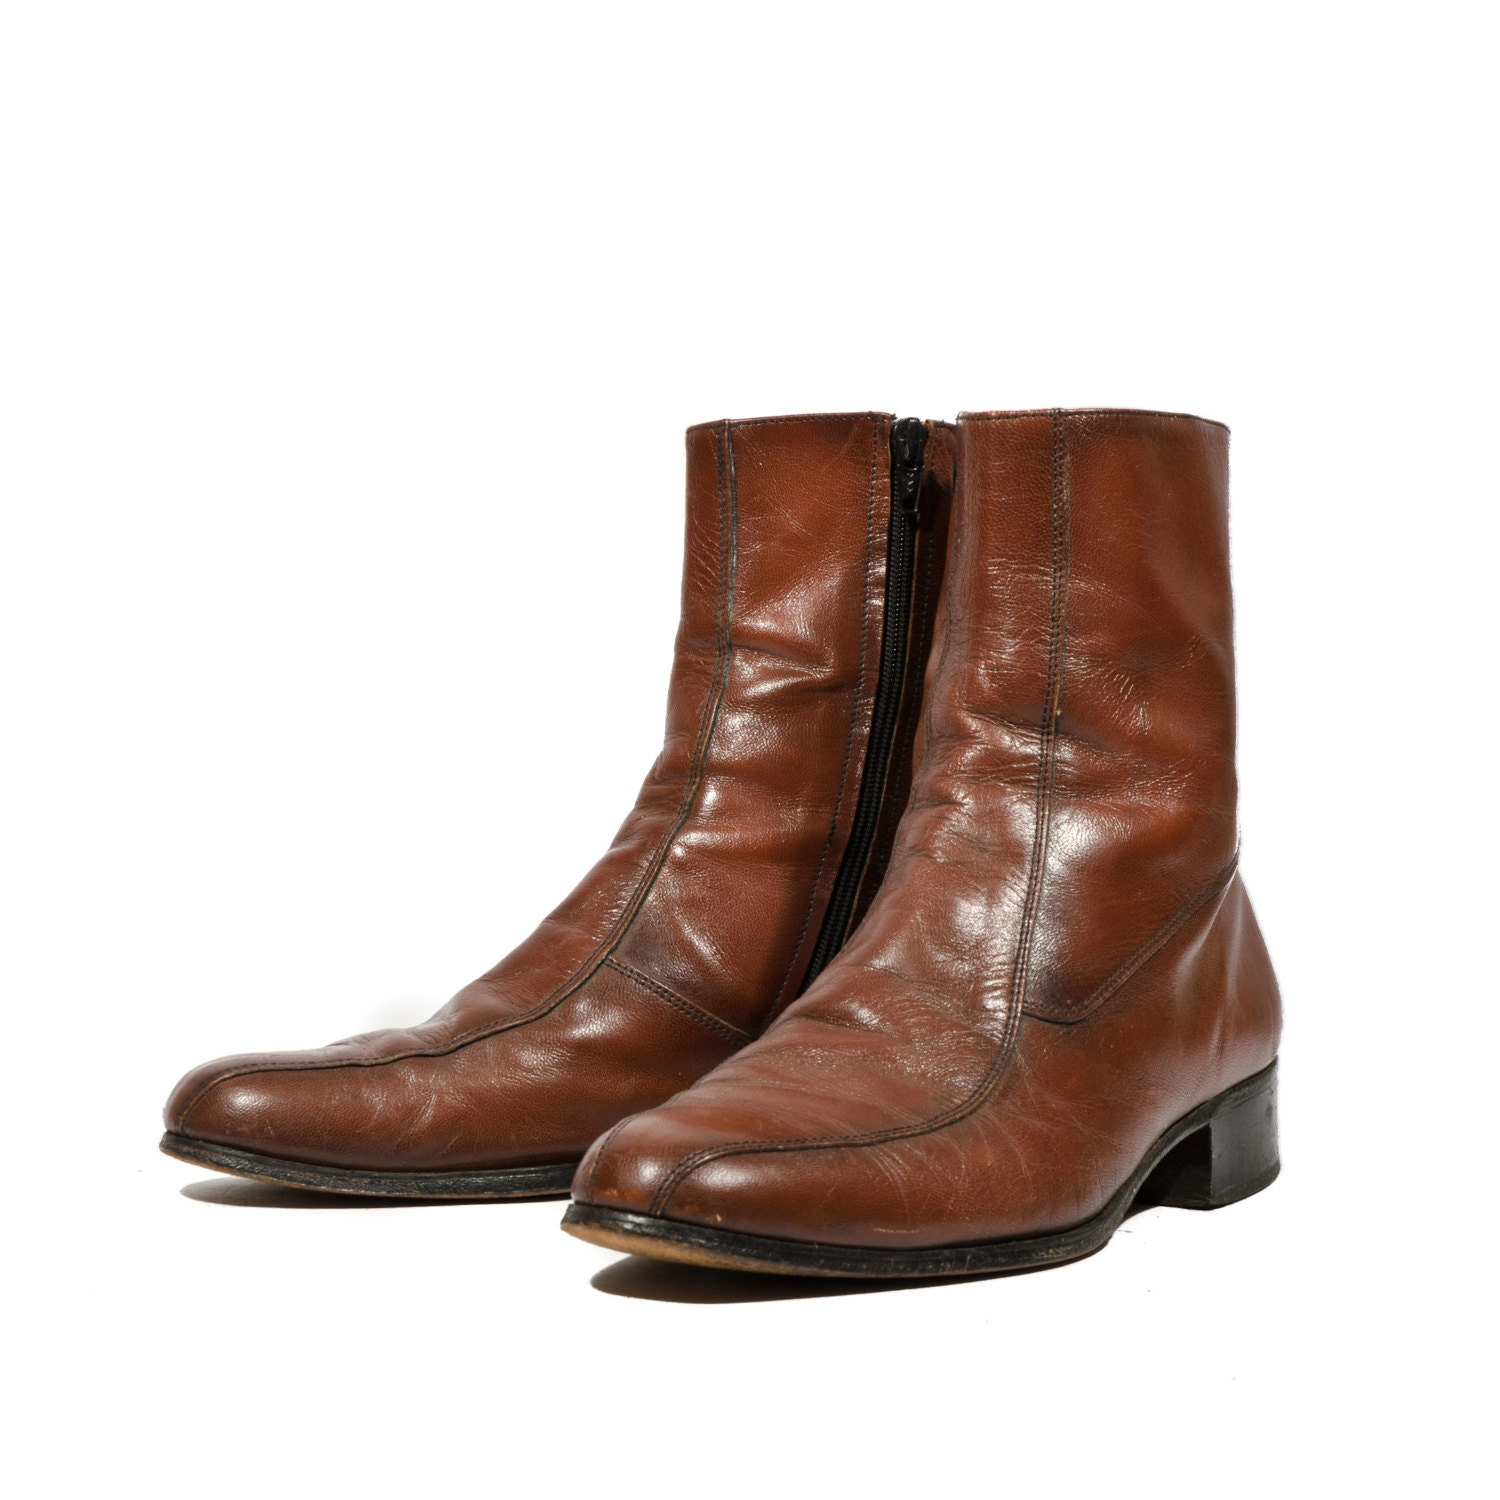 s mod zipper ankle boots brown leather dress shoes